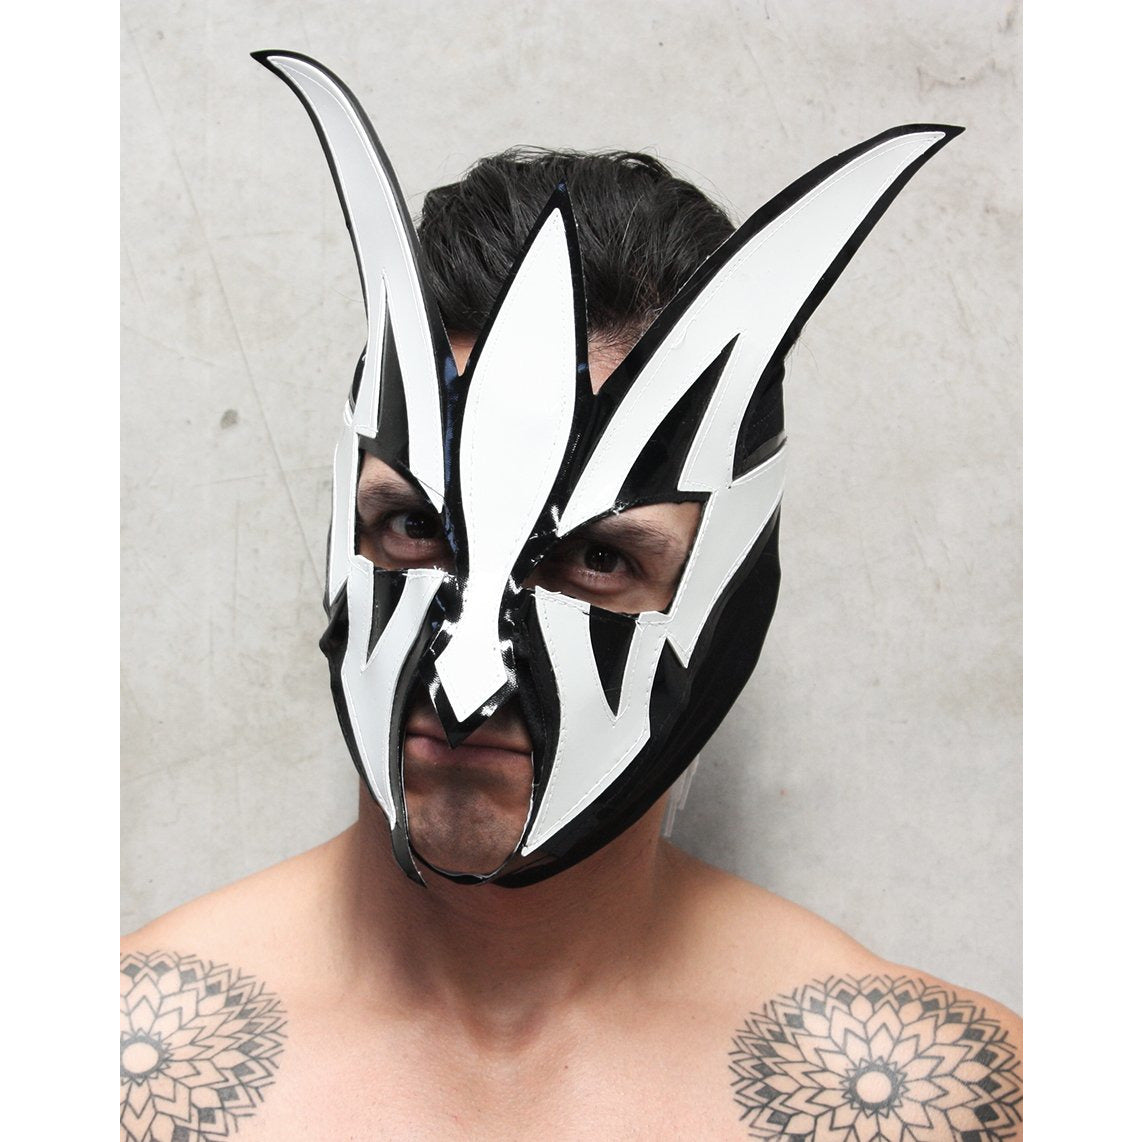 Willow Mask - Mexican Wrestling Masks - Lucha Libre Mask